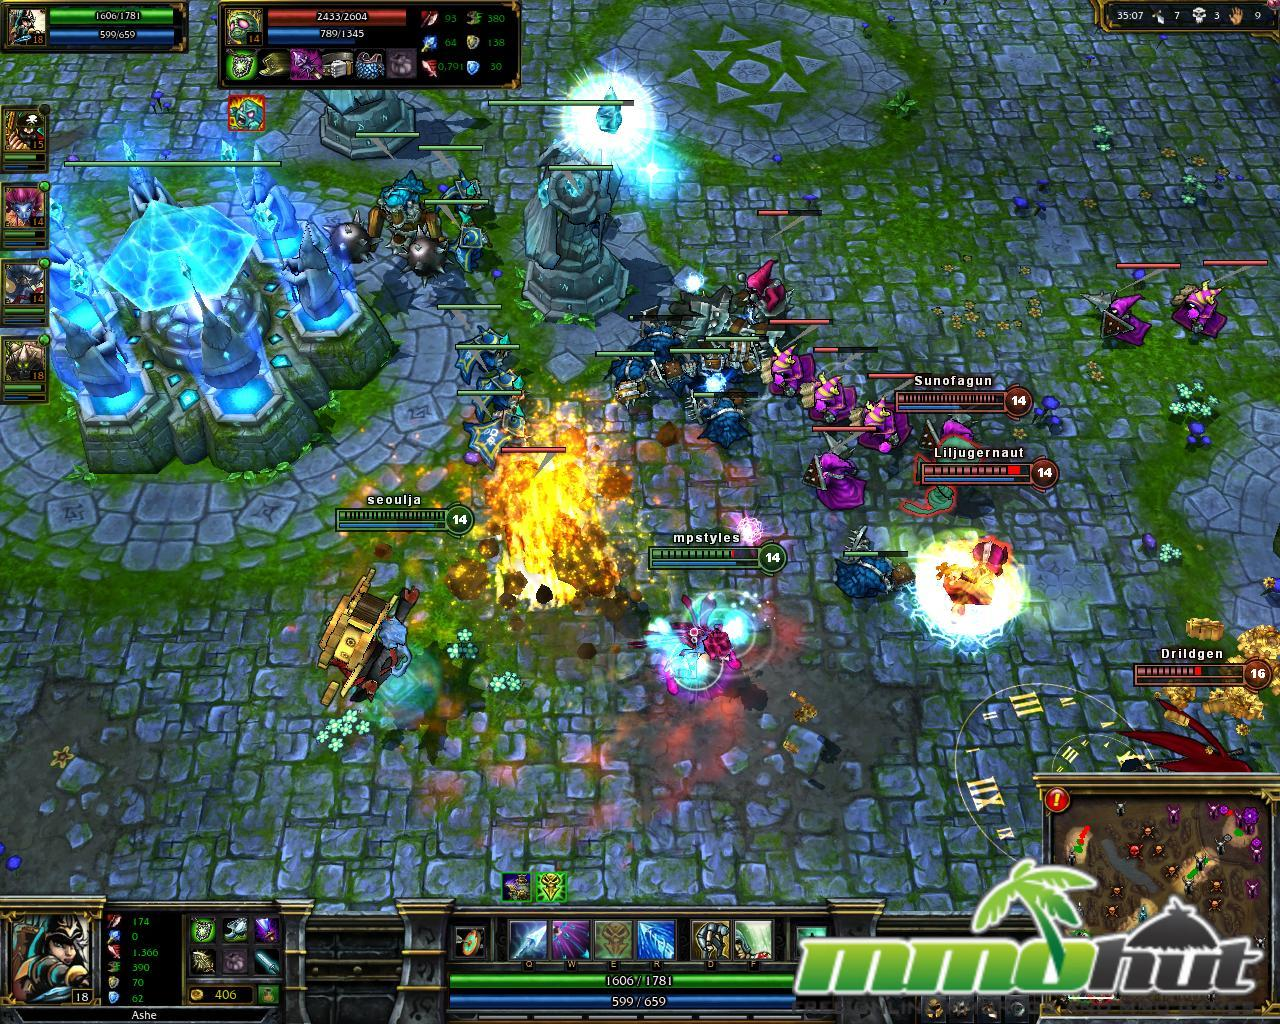 Top 10 Best 3D MMORPGs / MMOs League of Legends